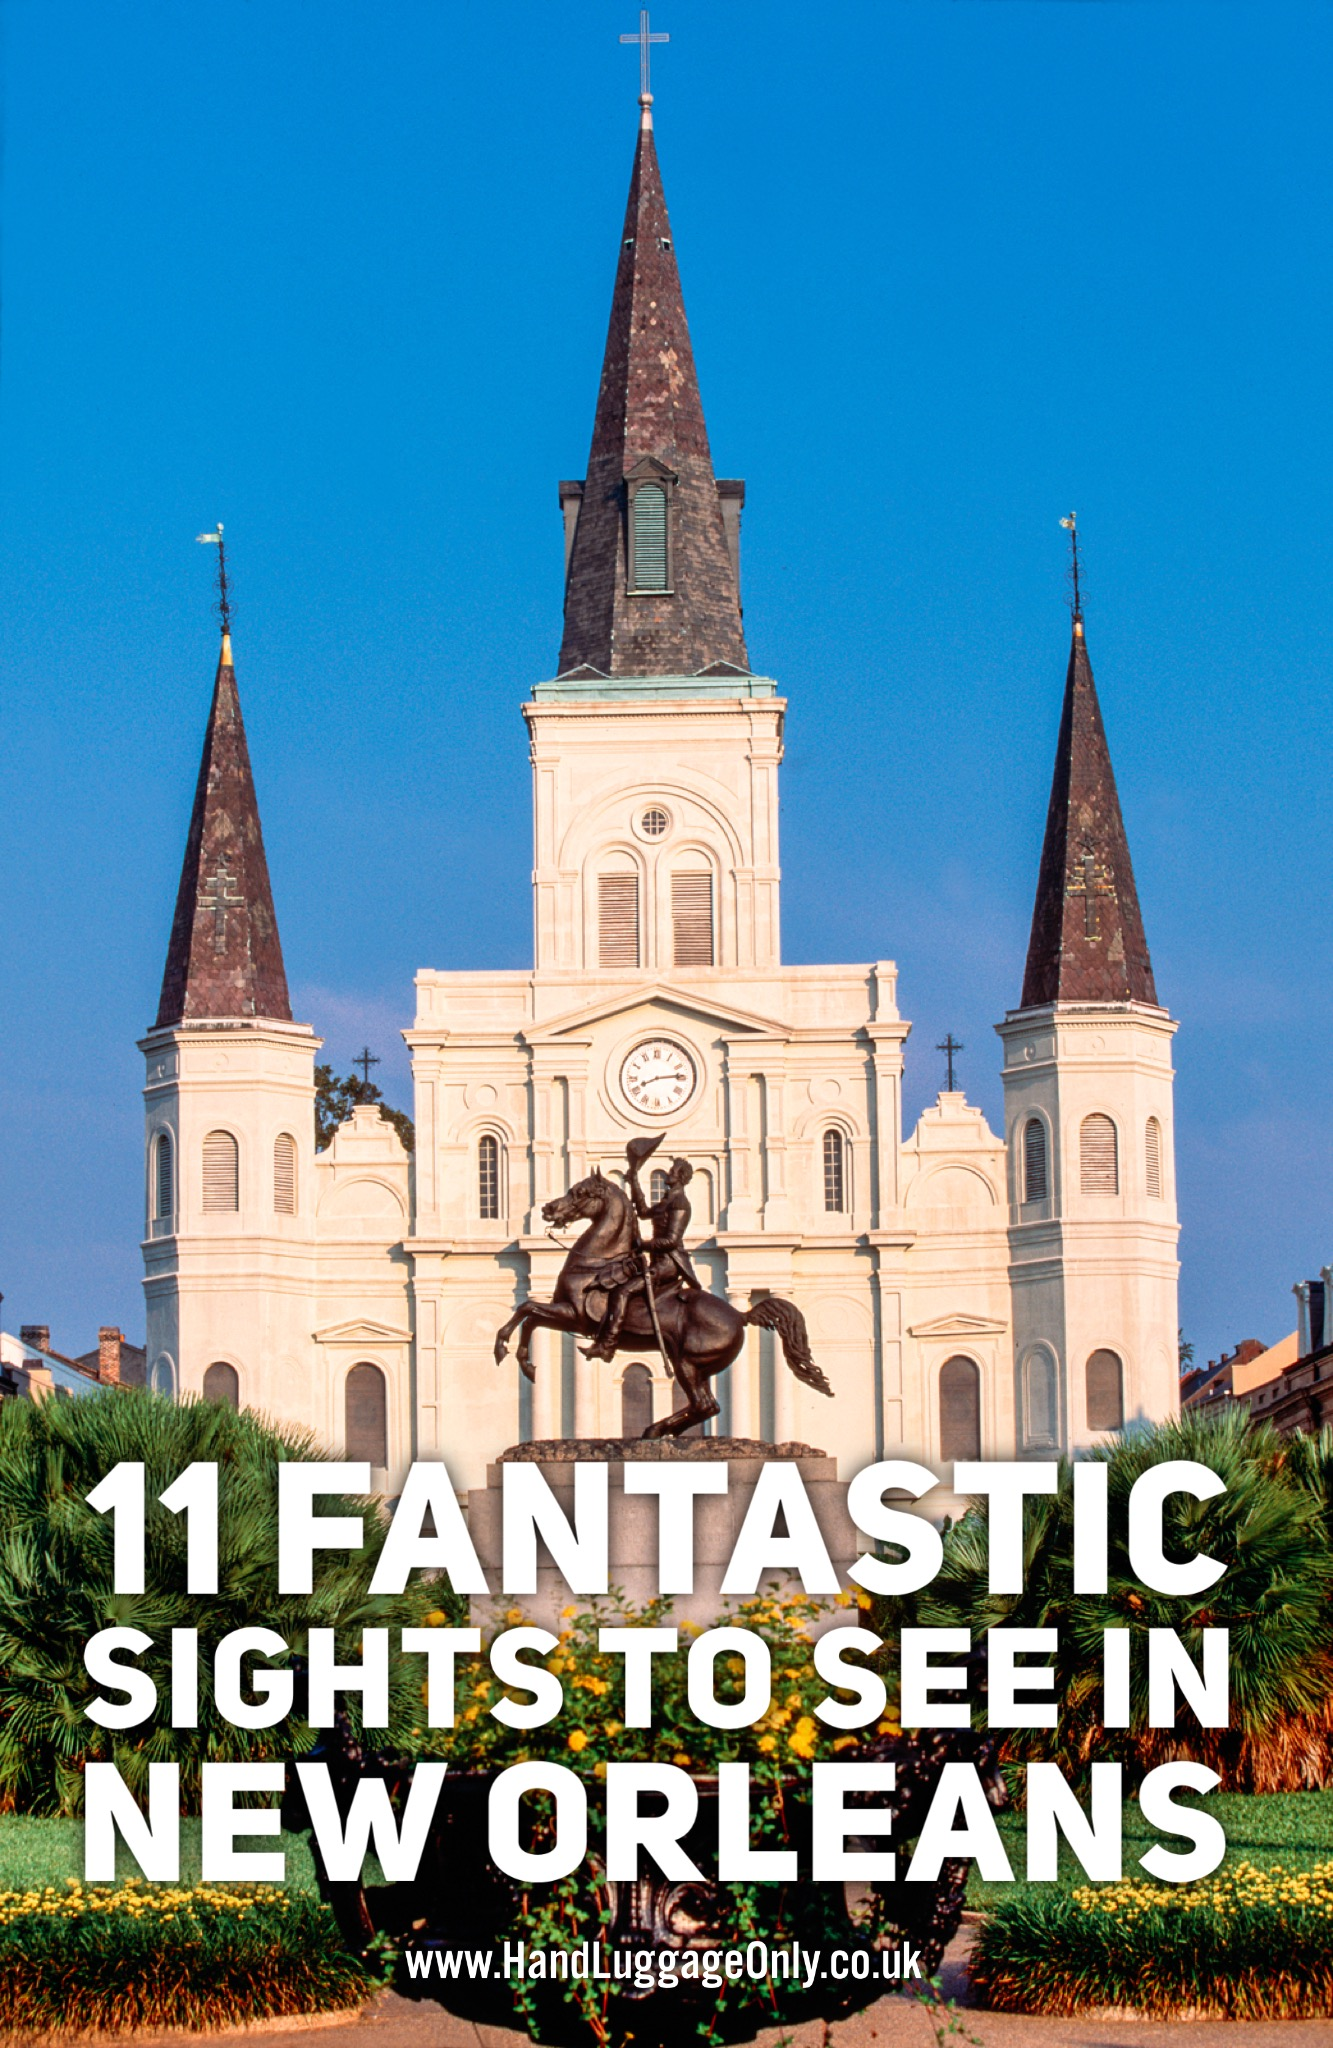 11 Fantastic Sights You Have To See In New Orleans, USA (1)